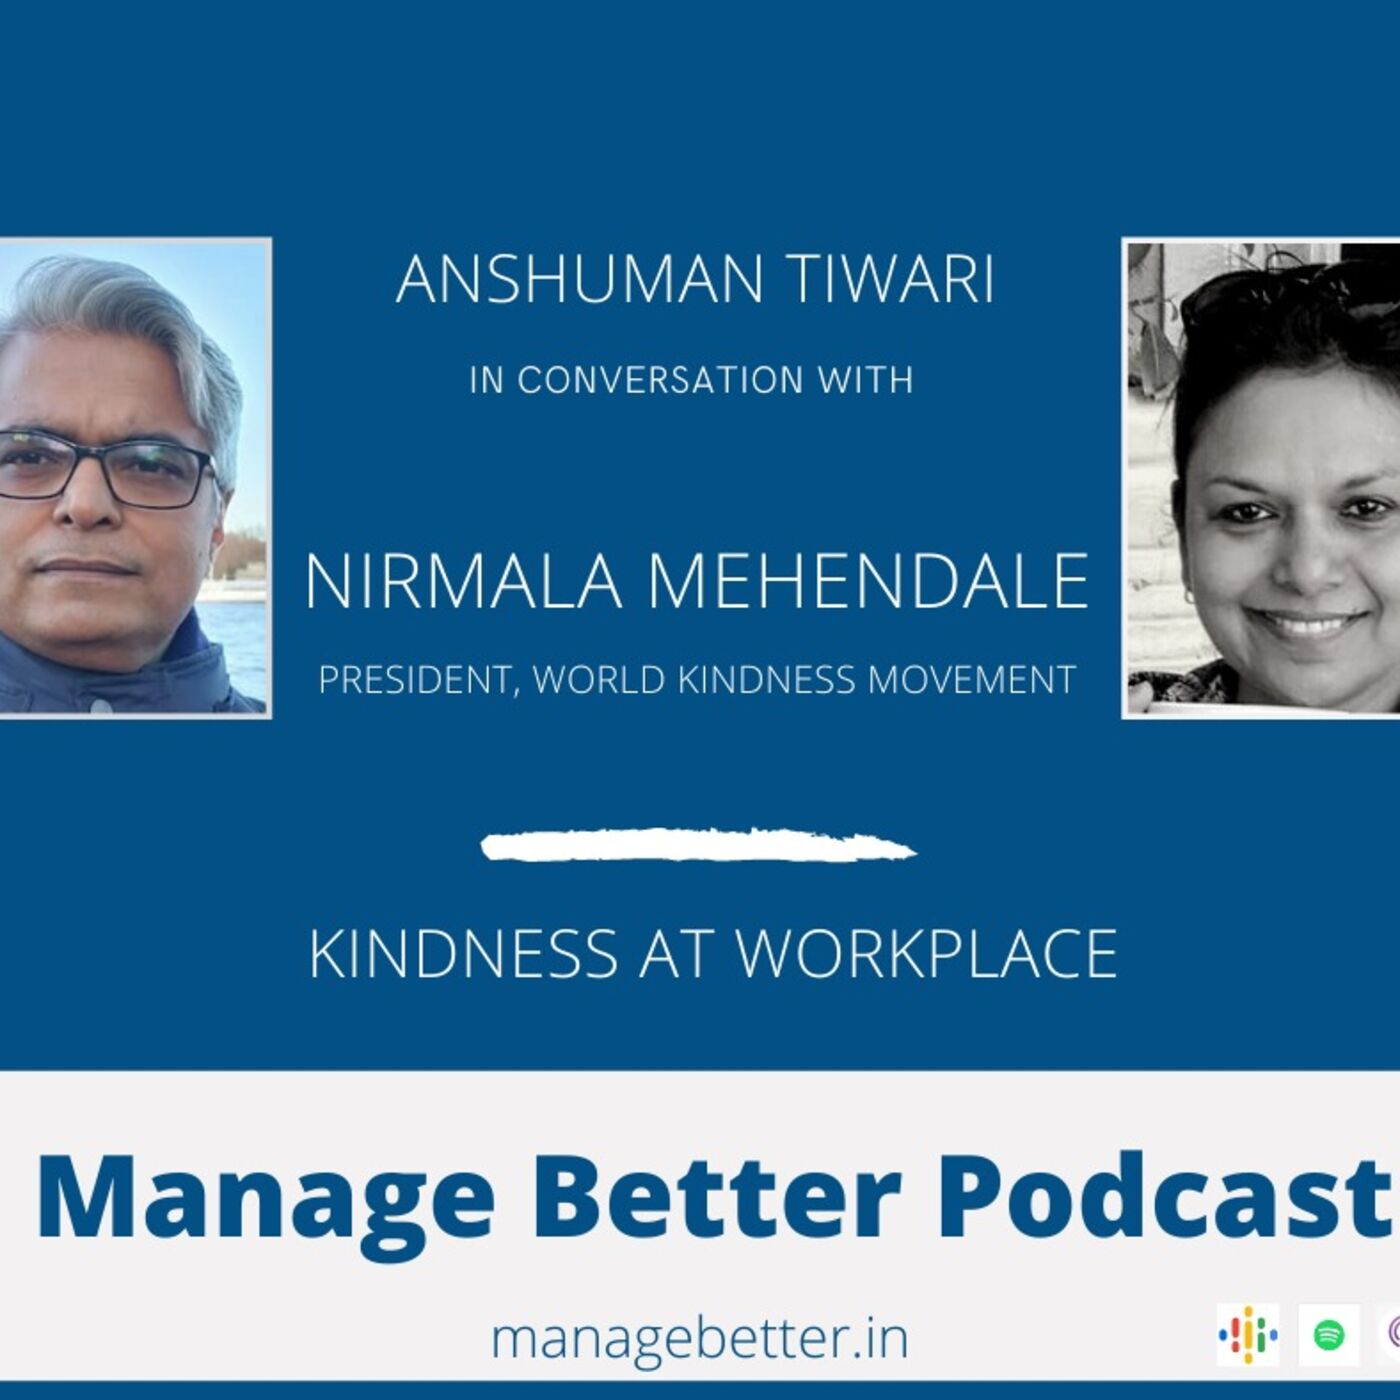 Nirmala Mehandale on Kindness at the Workplace